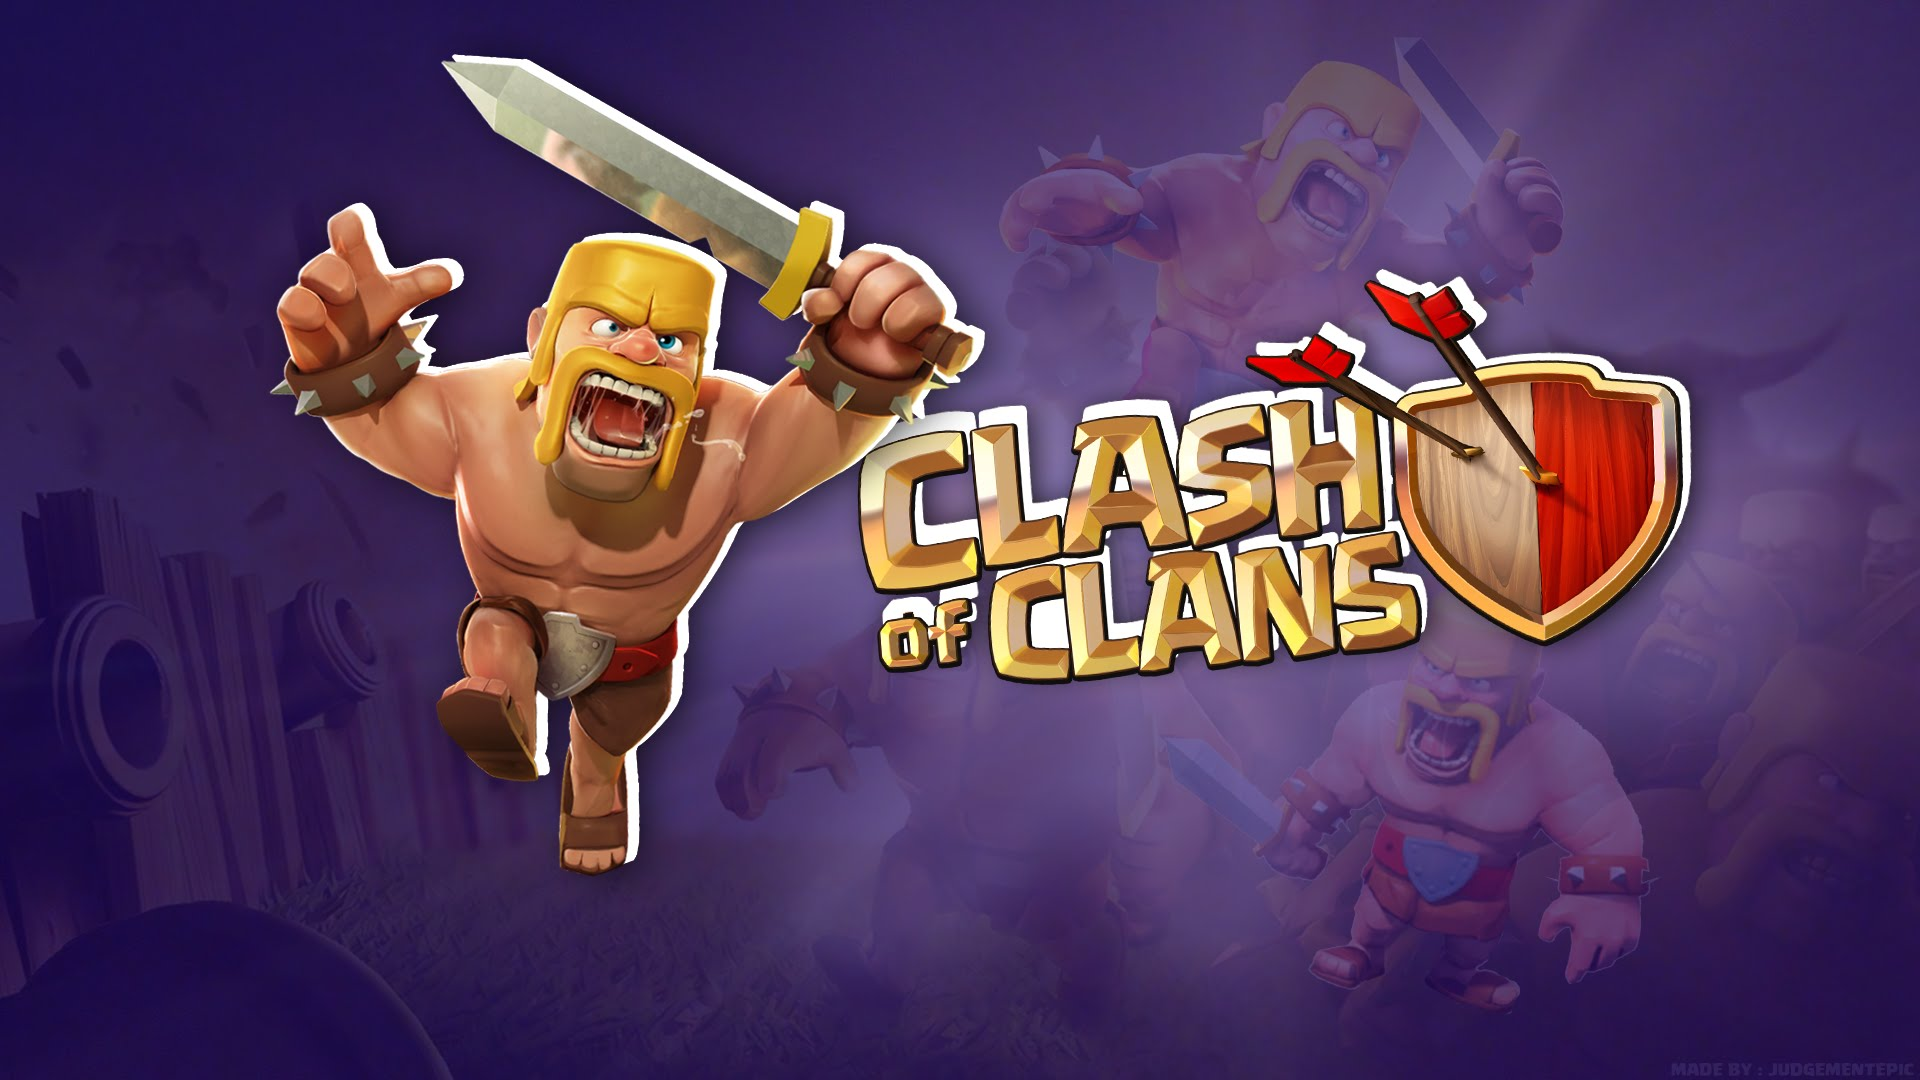 Clash Of Clans Hd Wallpapers - Clash Of Clans , HD Wallpaper & Backgrounds